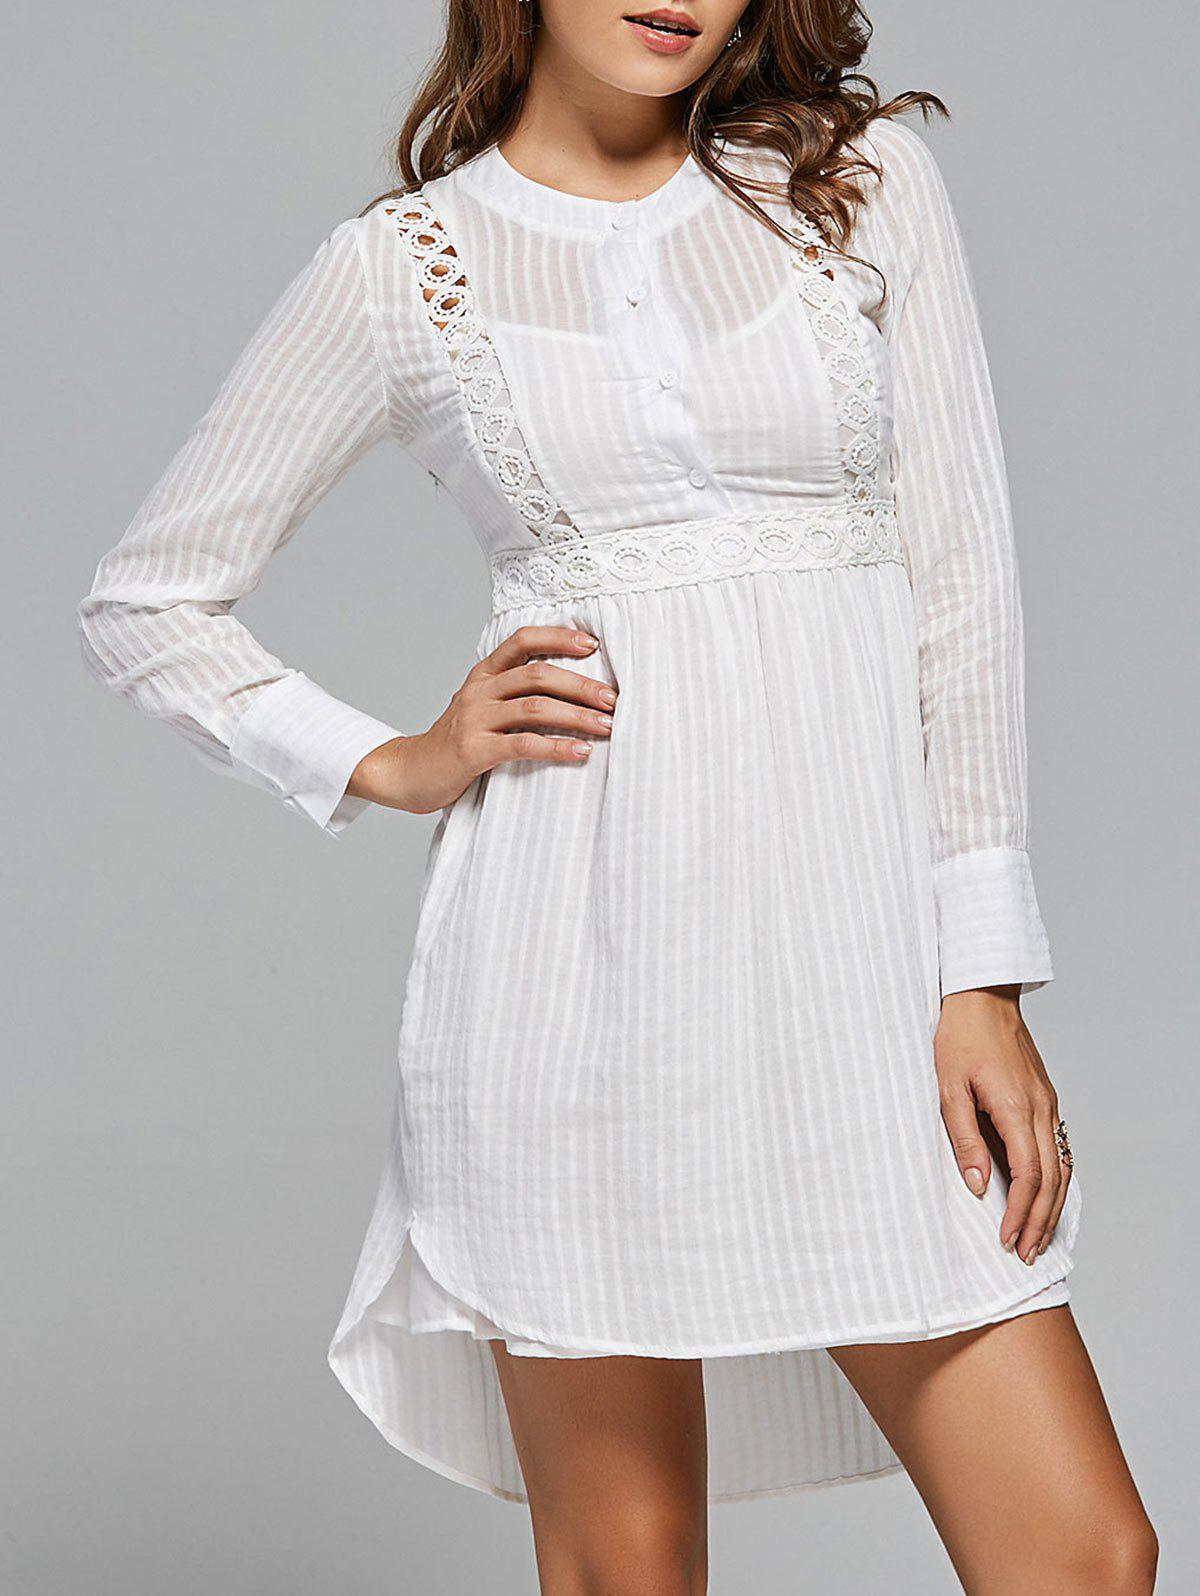 Lace Panel High Low Long Sleeve Dress - WHITE M